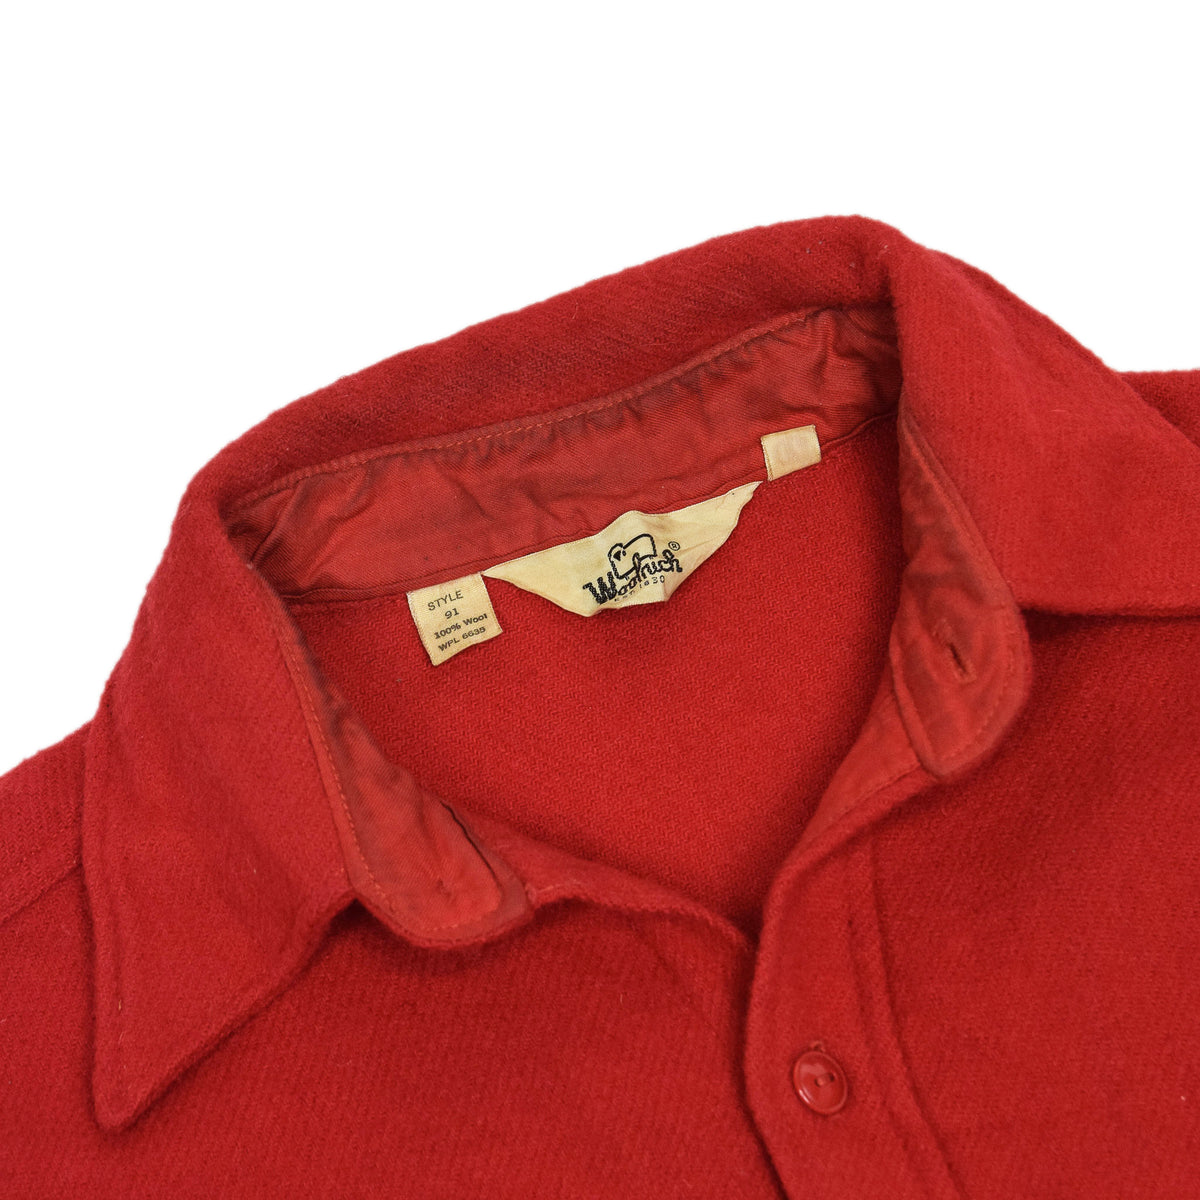 Vintage 70s Woolrich Red Long Sleeve Wool Shirt Made in USA L collar